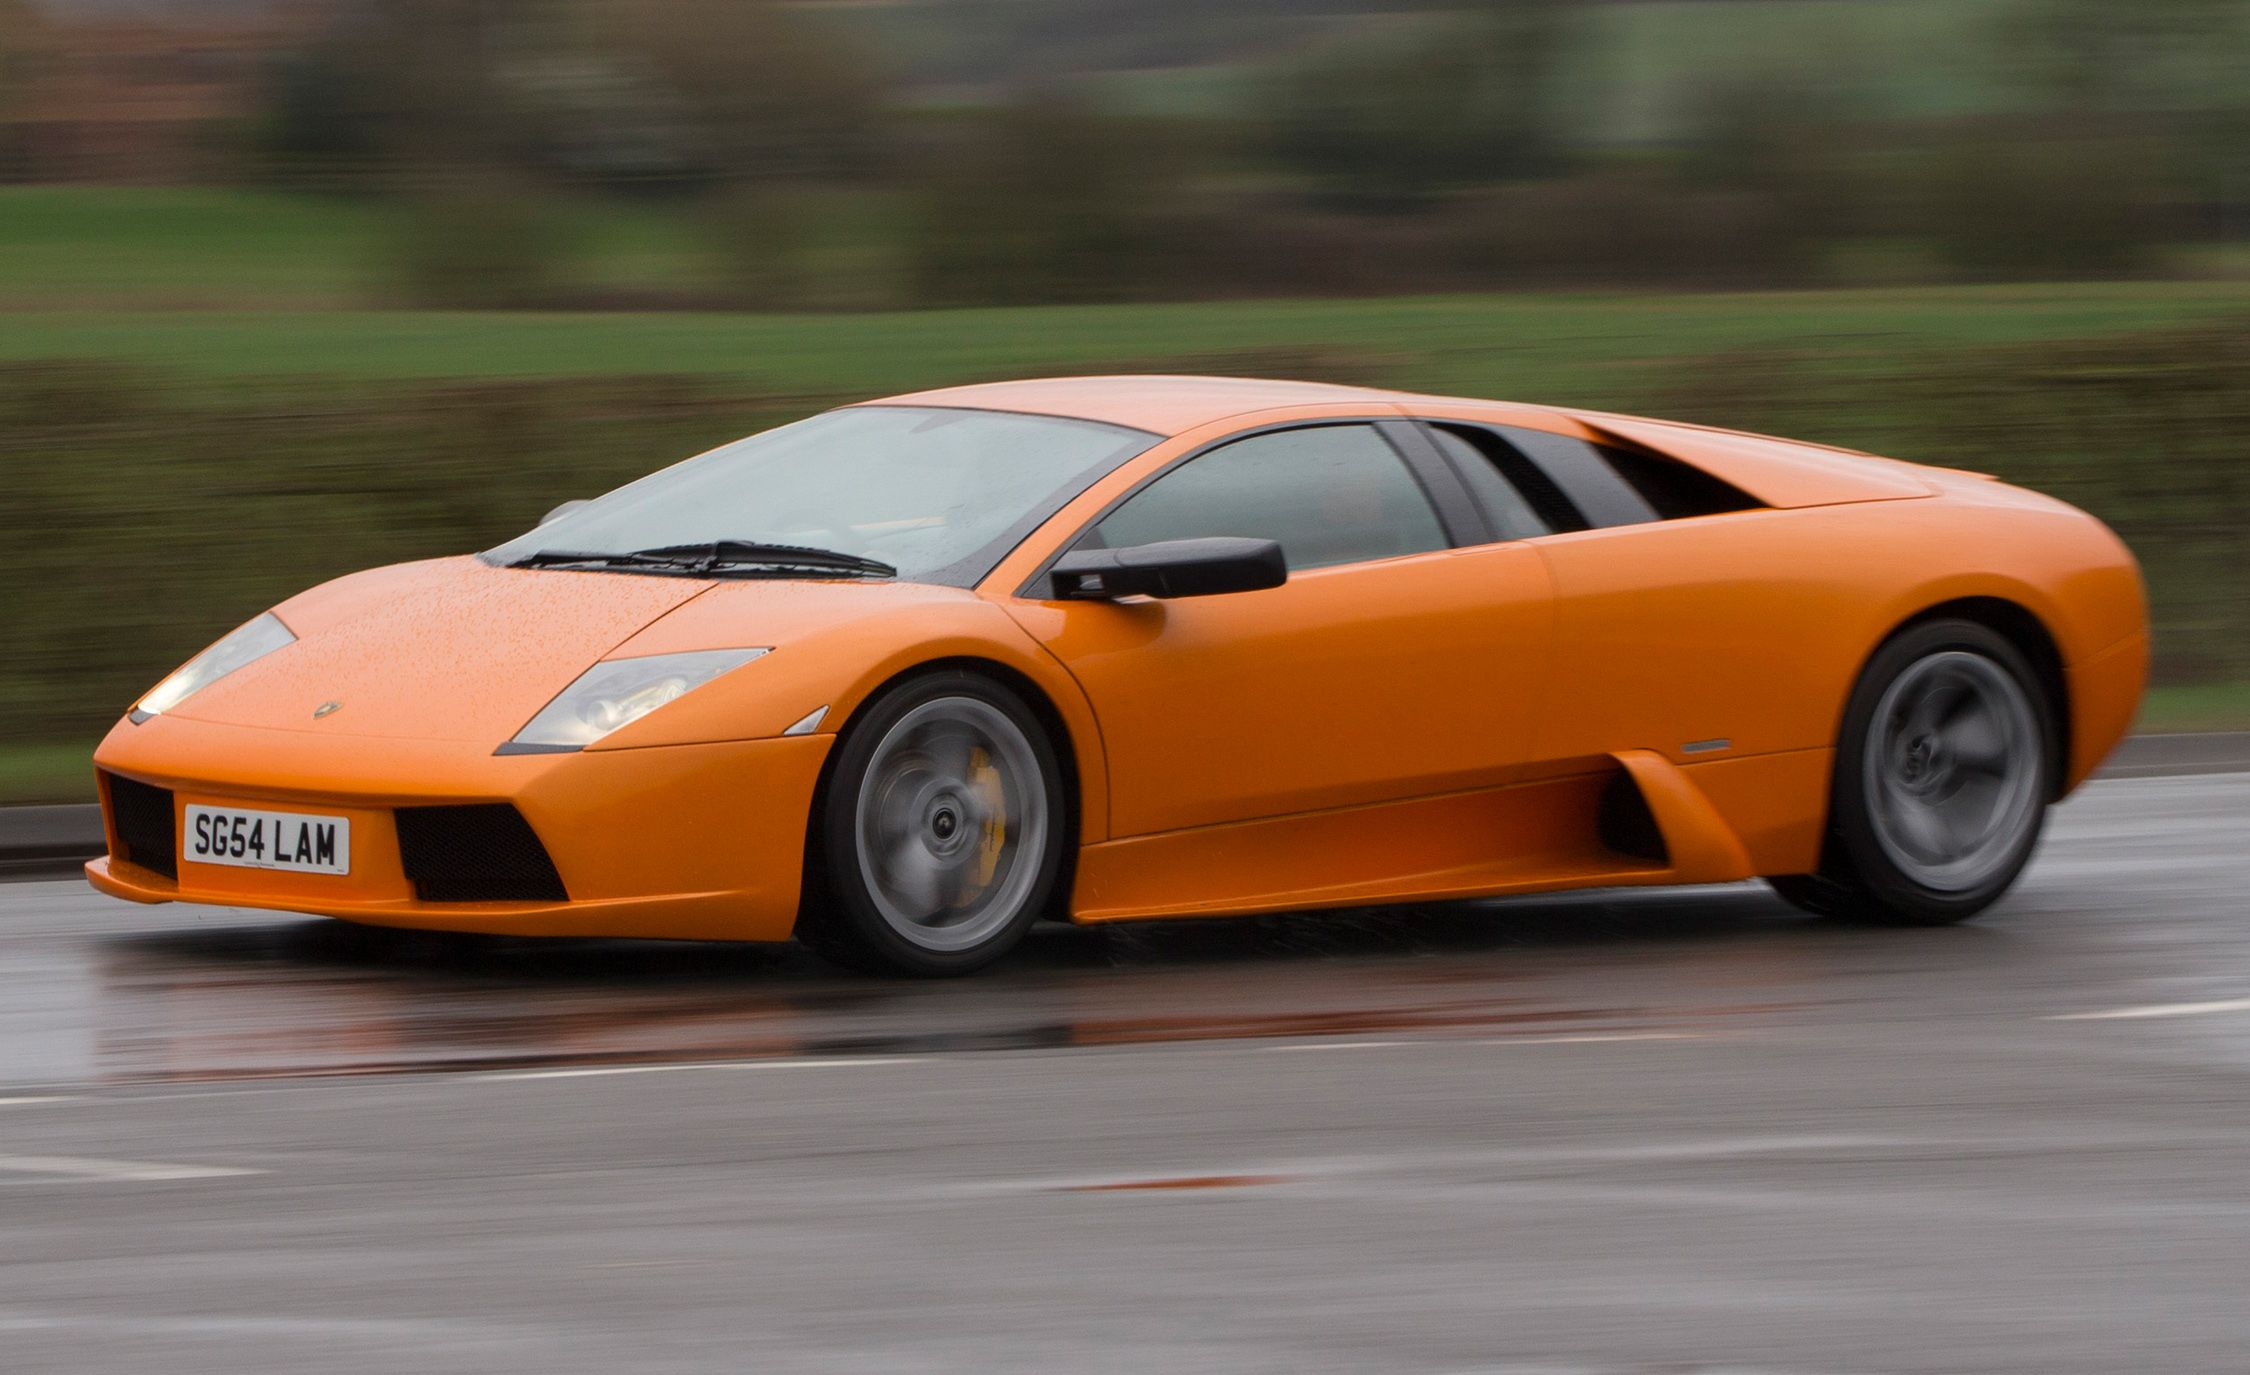 We Drive a 250,000-Mile Lamborghini Murcielago | Feature ...